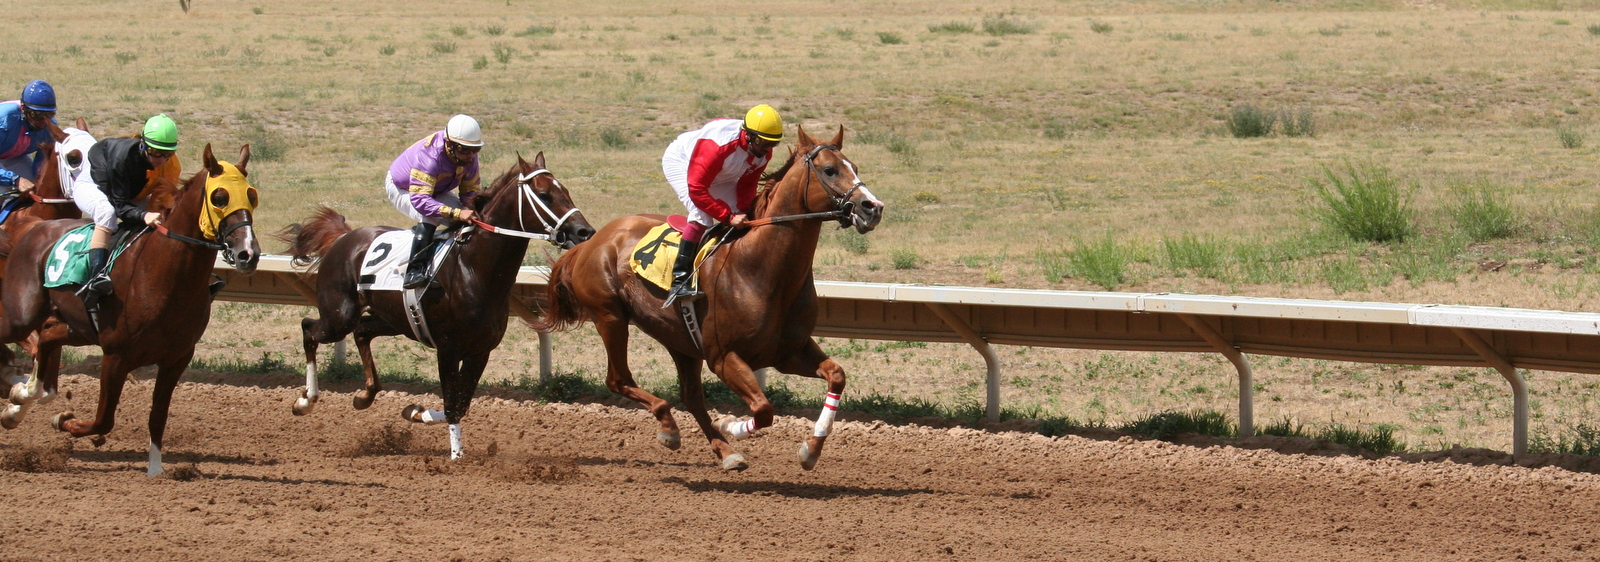 Arabians racing at Arapahoe Park